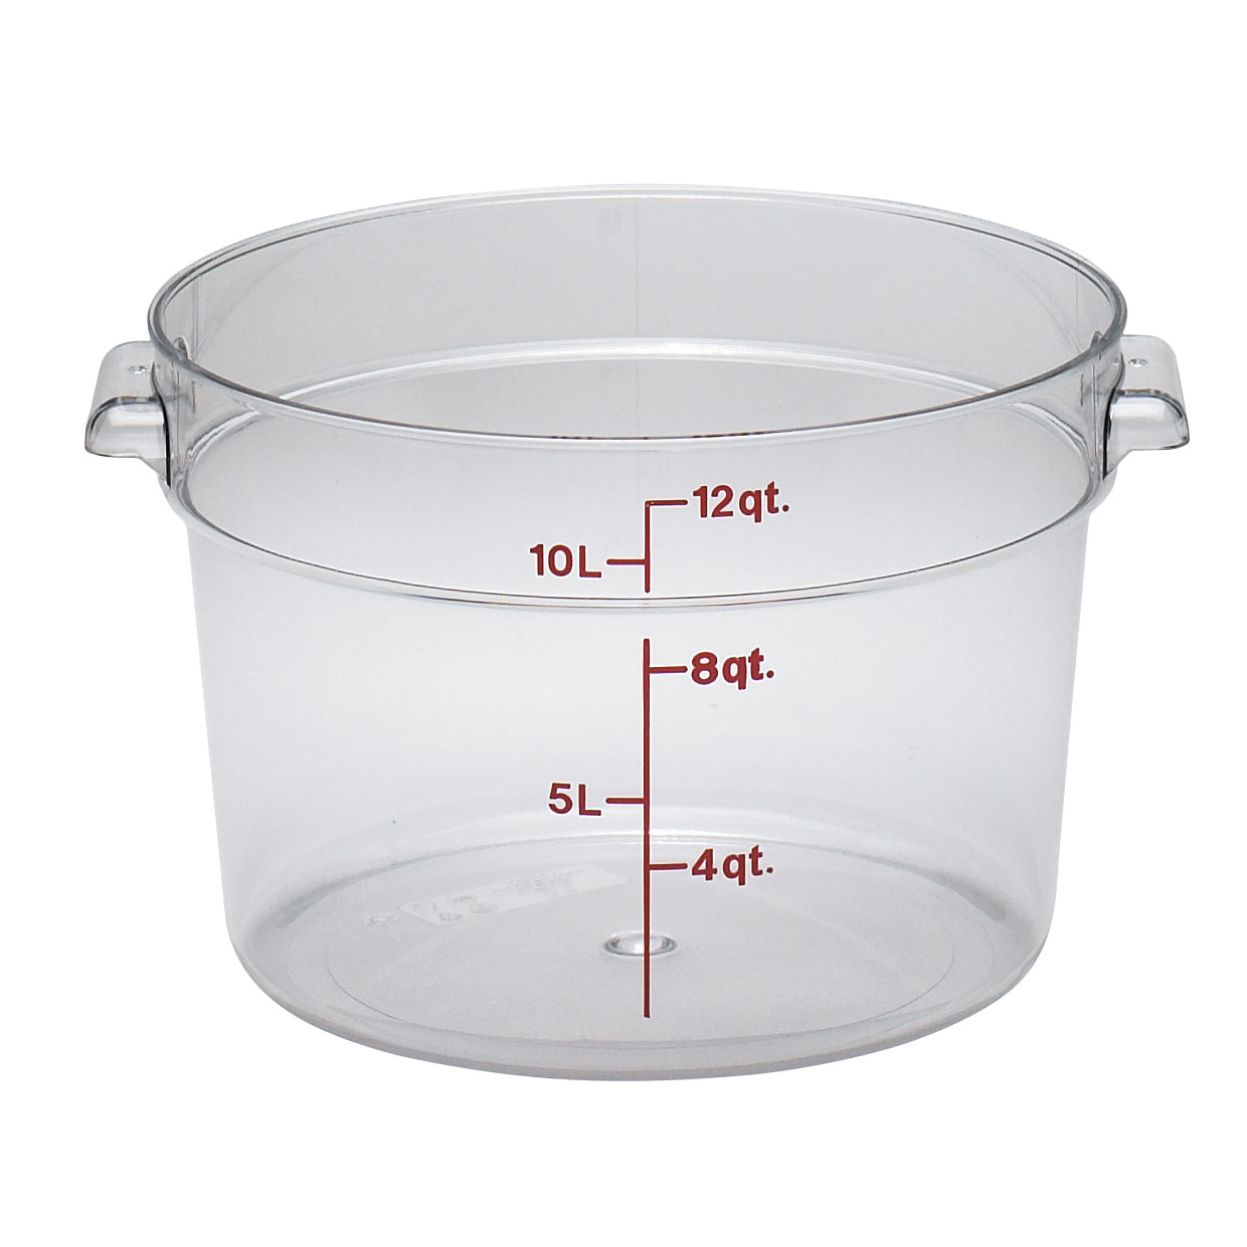 2700-16 Cambro Food Storage Container 12 qt., Round clear